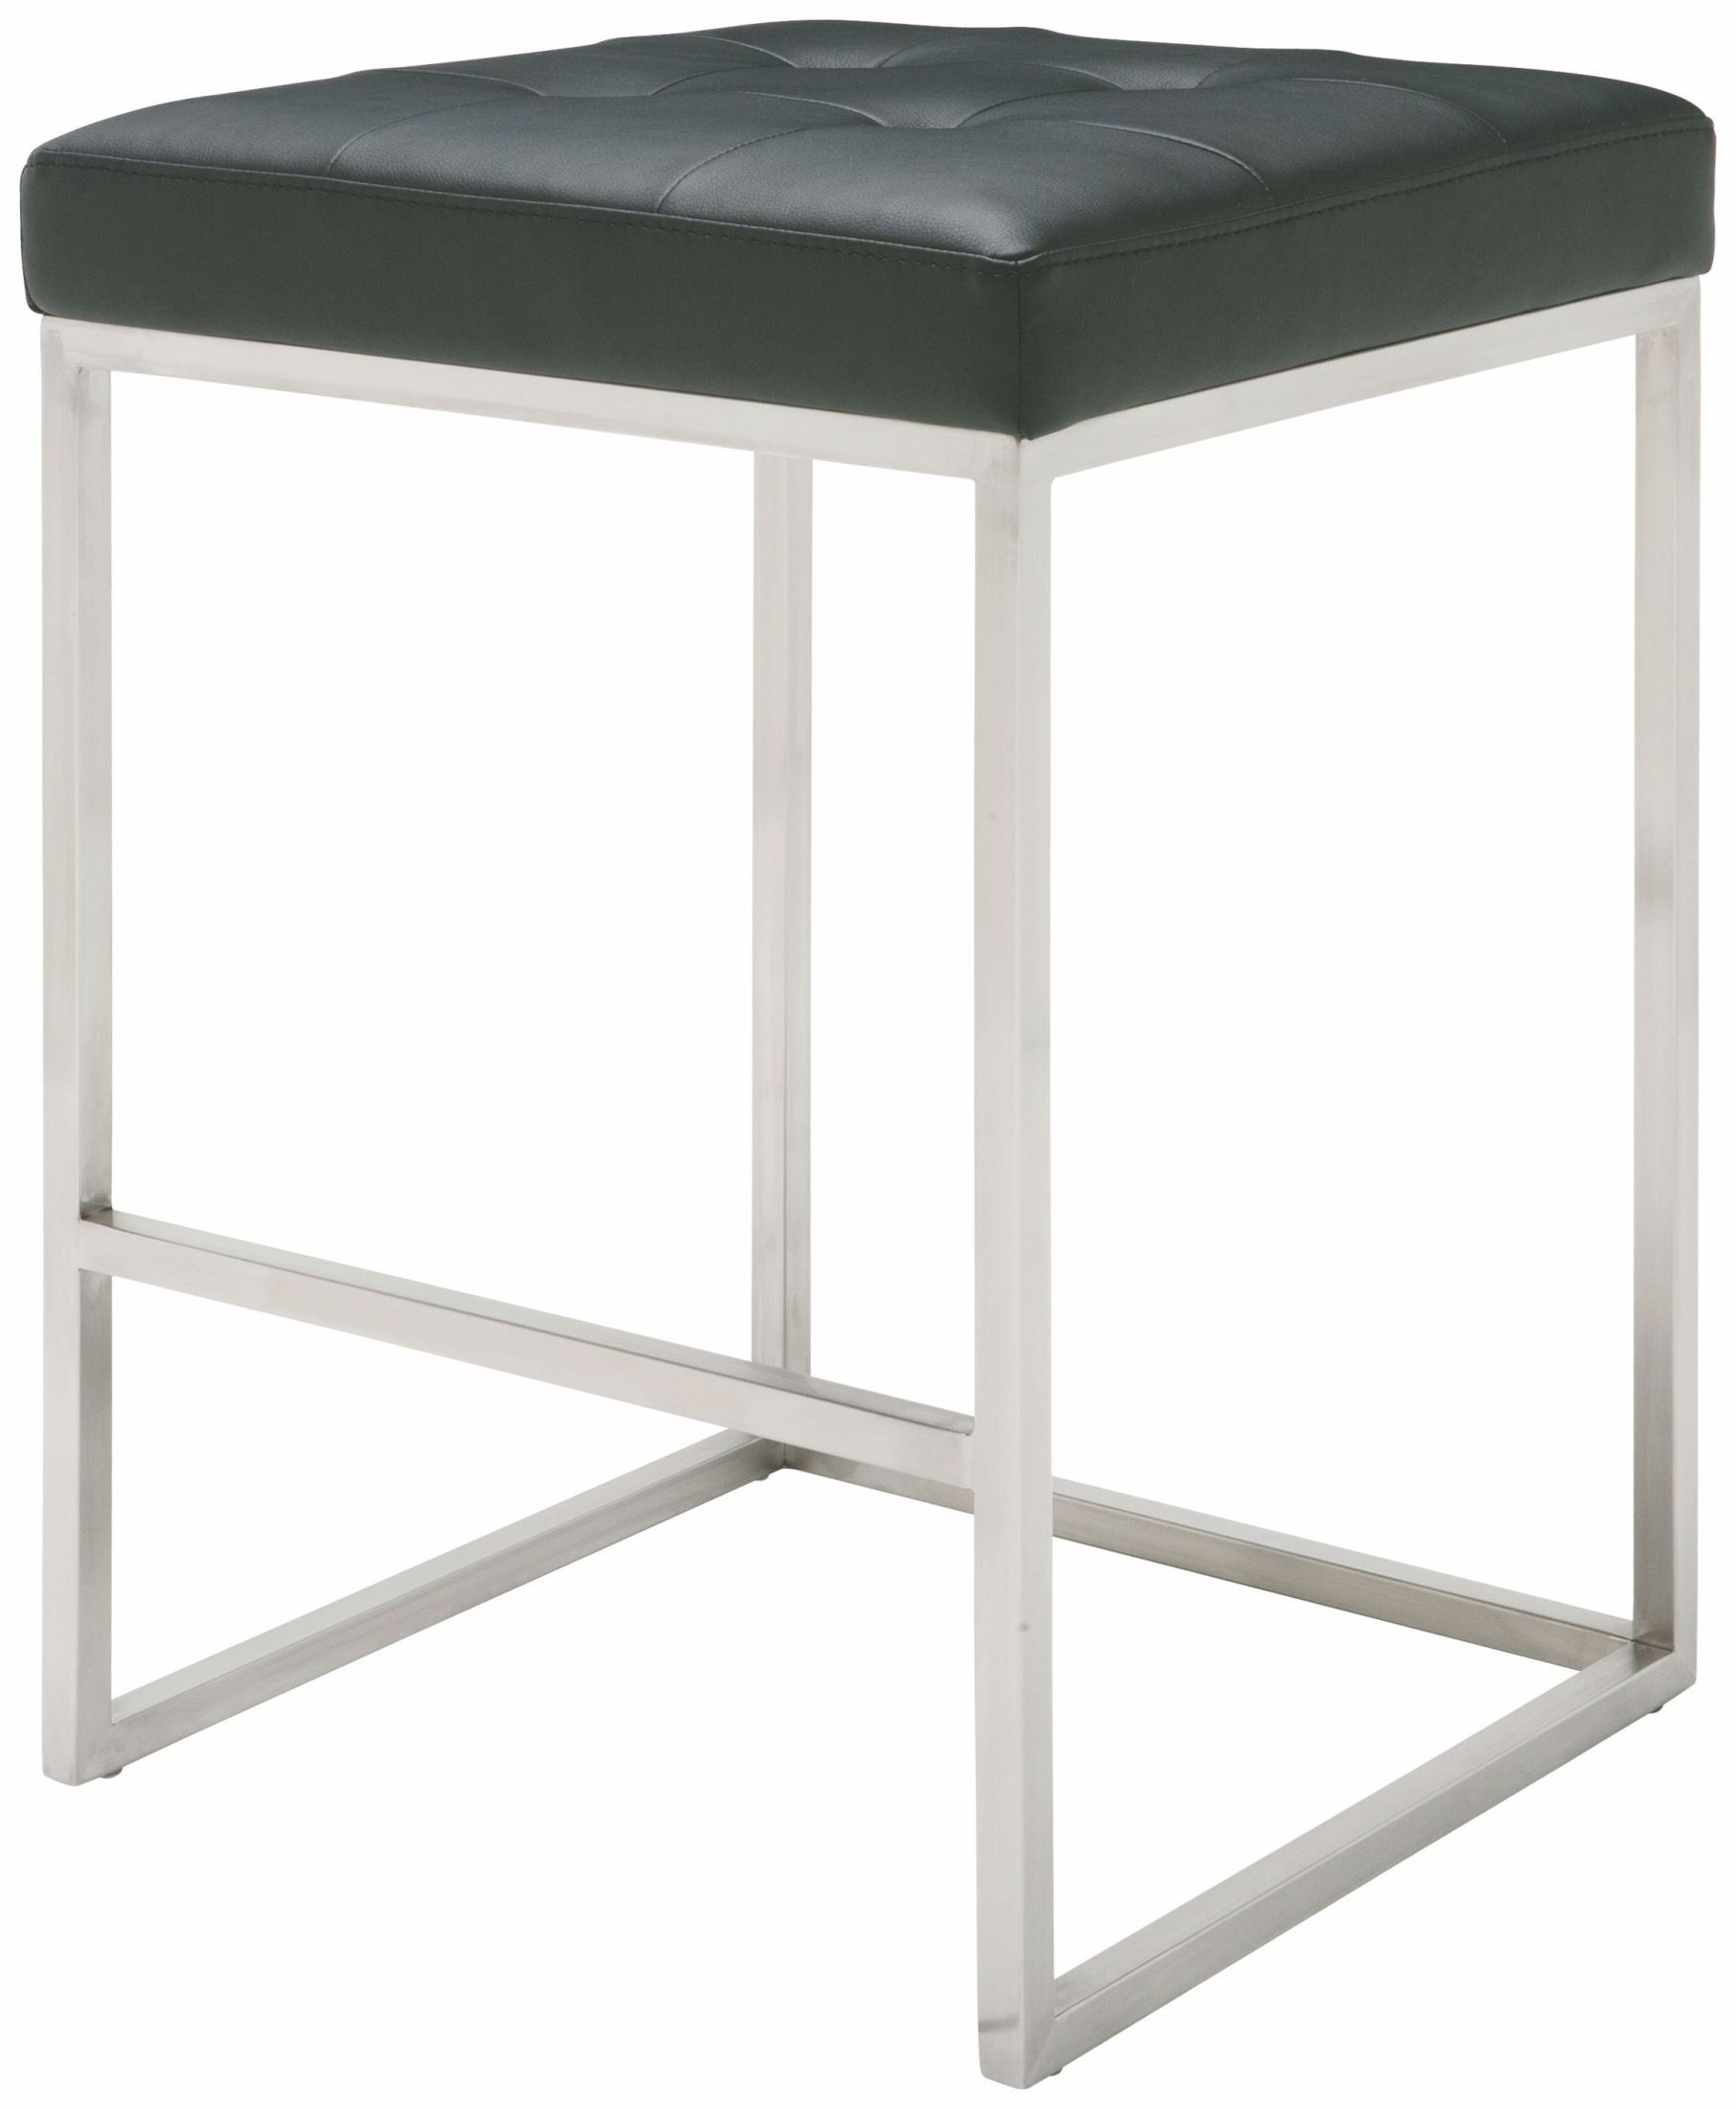 Chi Black Leather Counter Stool From Nuevo Coleman Furniture